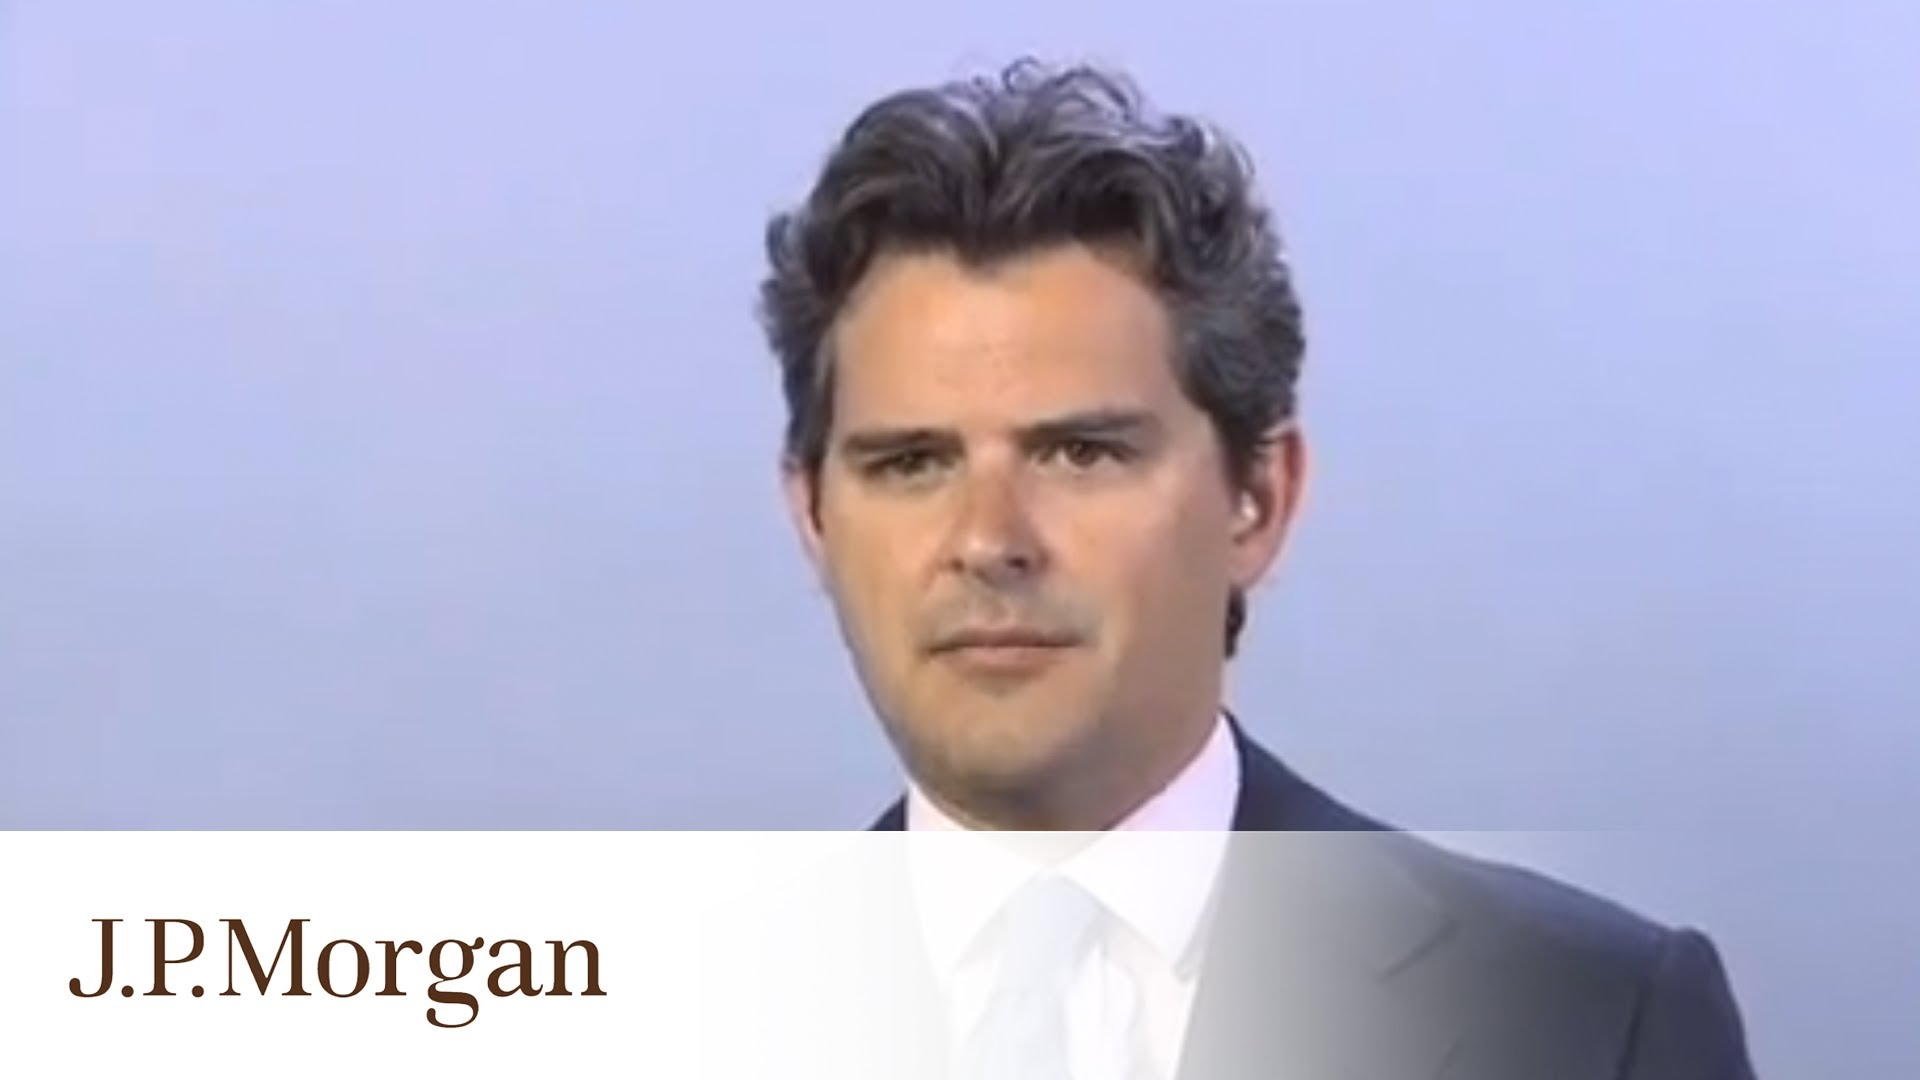 Senior Leaders Series: Filippo Gori | Managing Your Career | J.P. Morgan